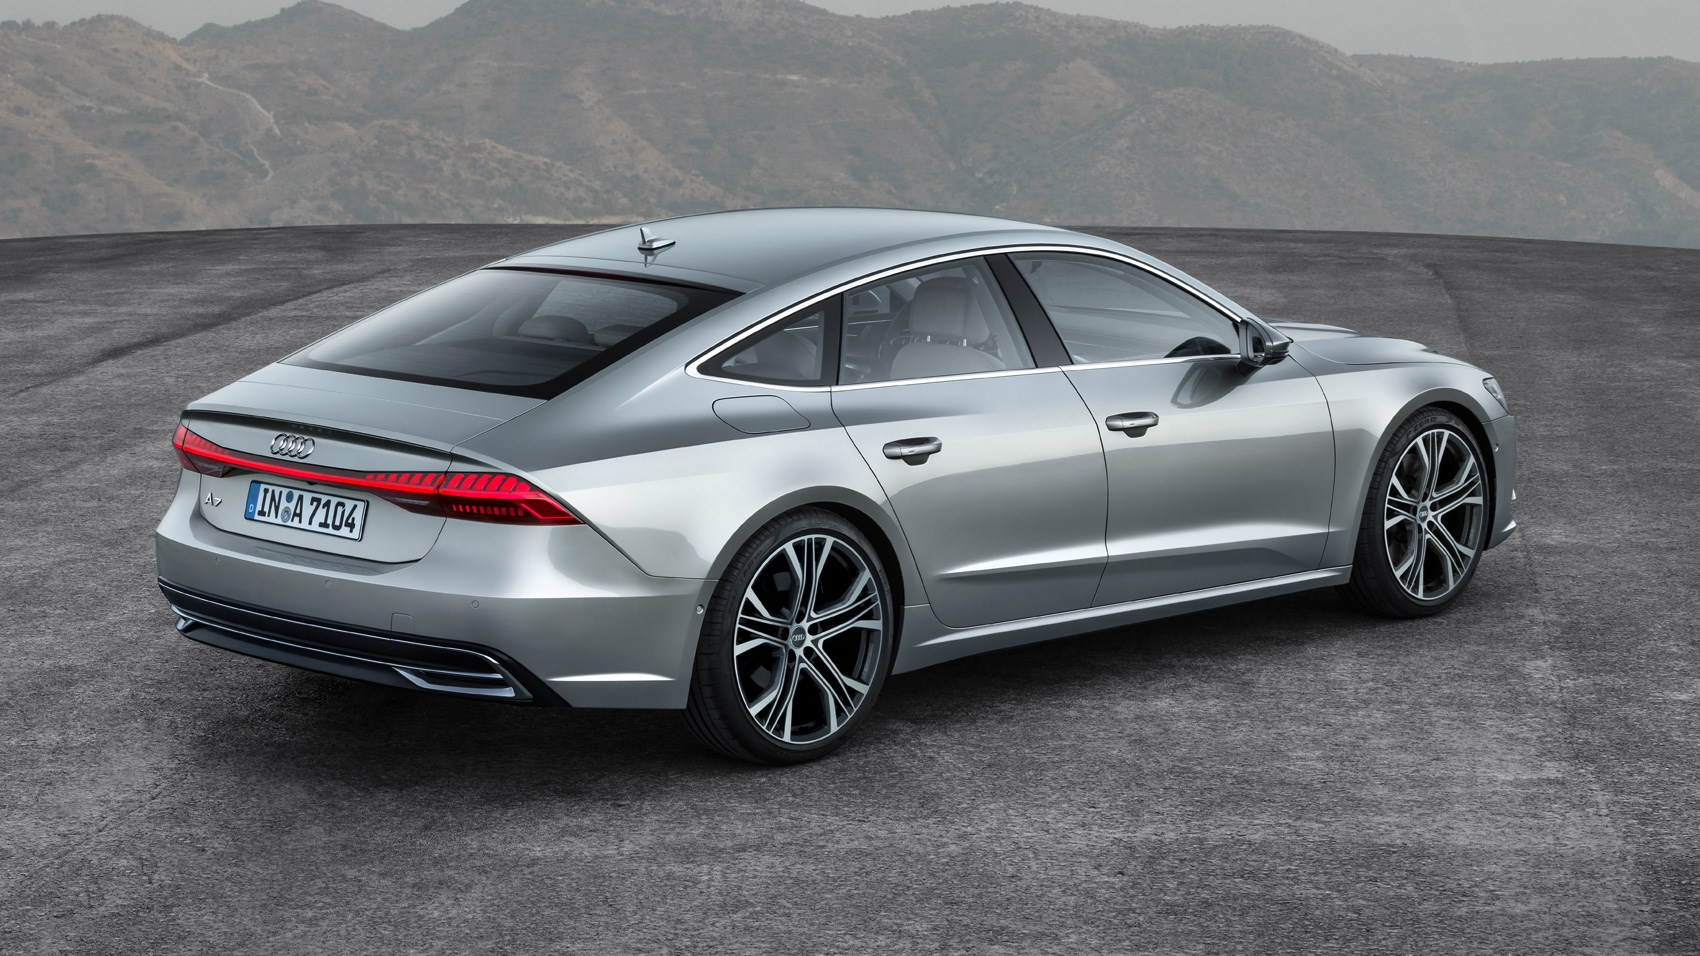 auto debut show all news the kelley kbb naias book makes latest audi car blue